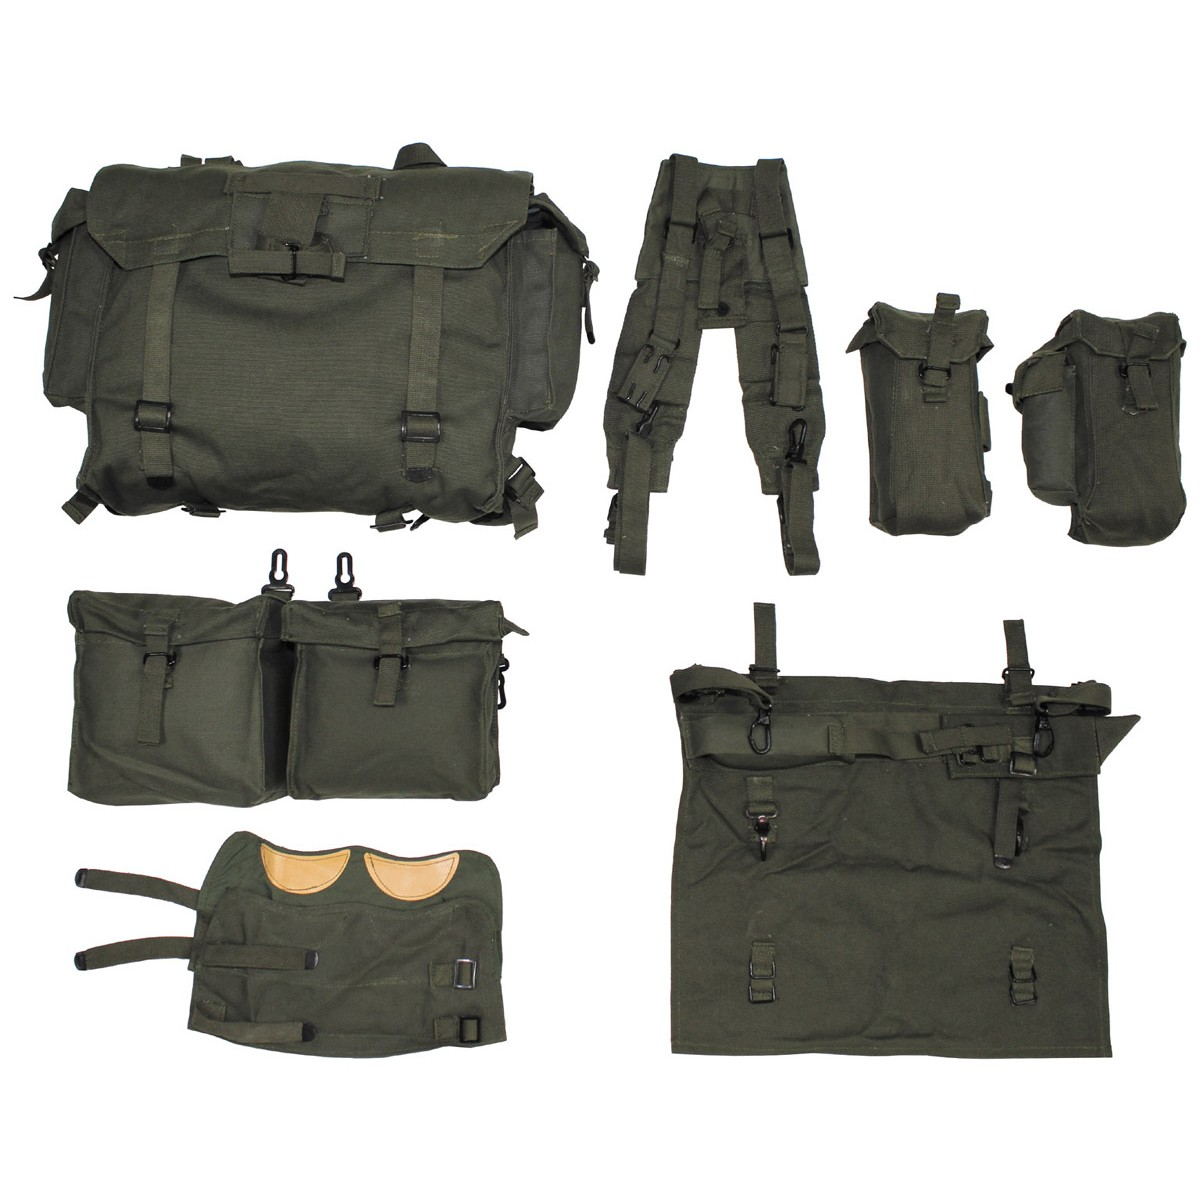 Original Czech Army OSN Tactical Backpack Fully 8 Parts Set - Never Used